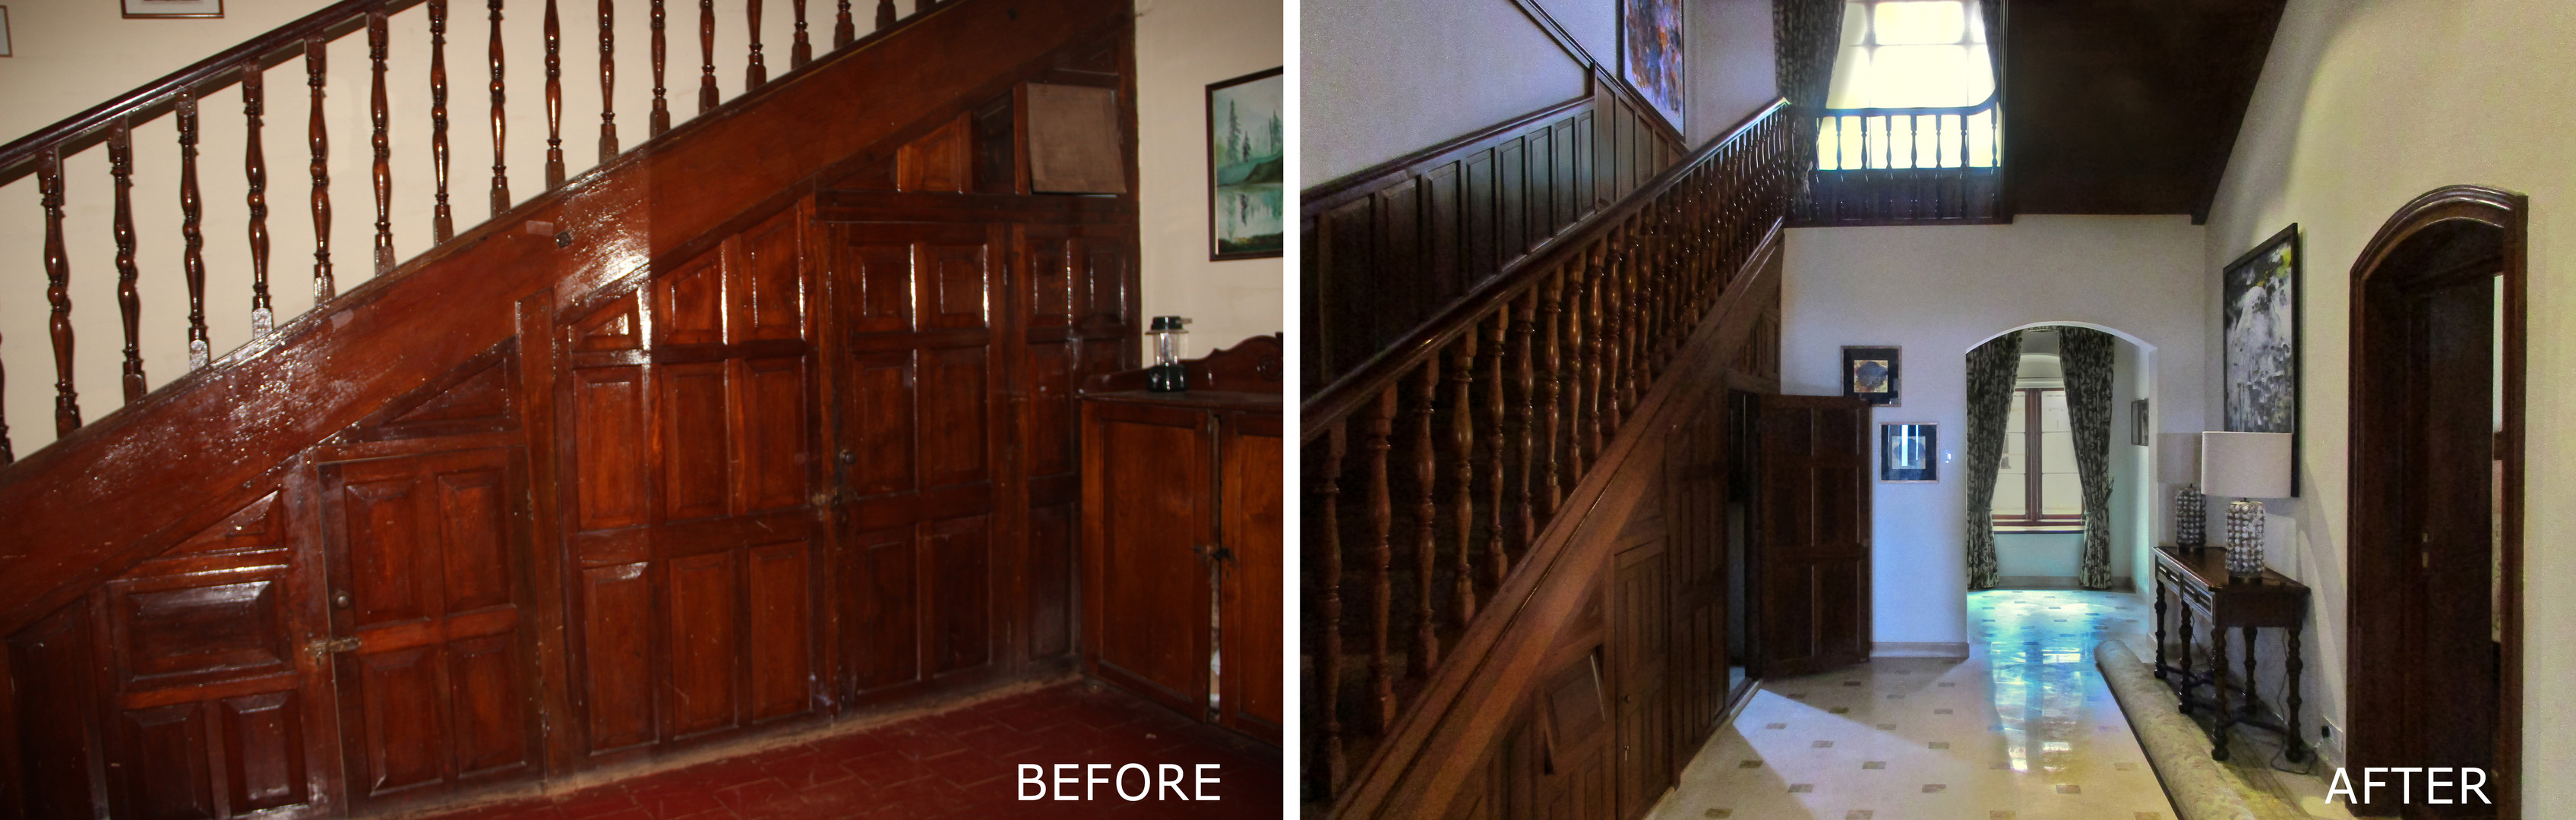 Before and After - Interior Timber Staircase